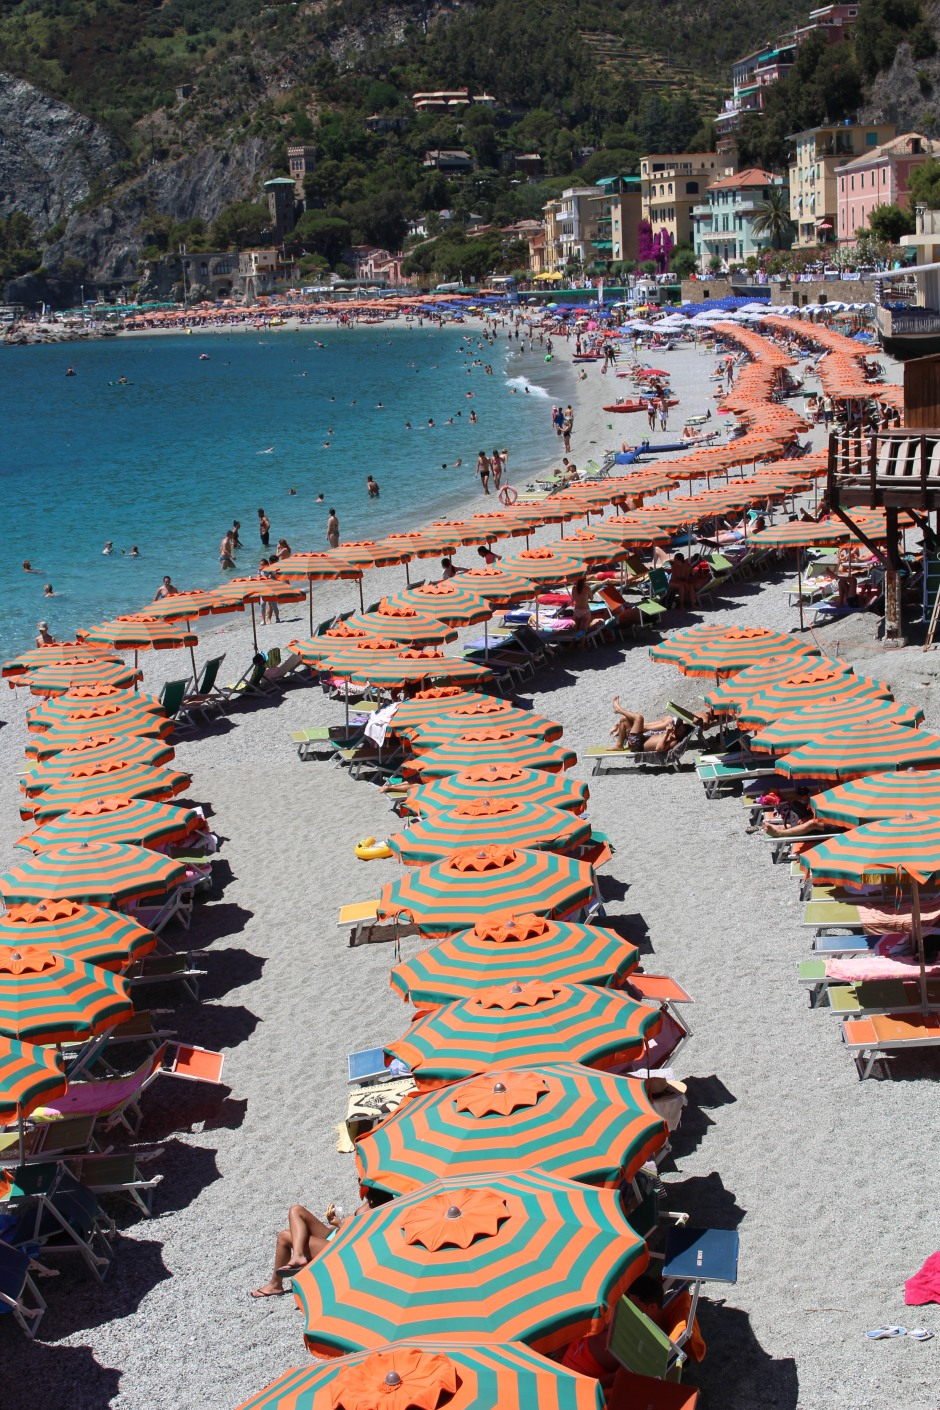 Umbrellas on the beach: Cinque Terre